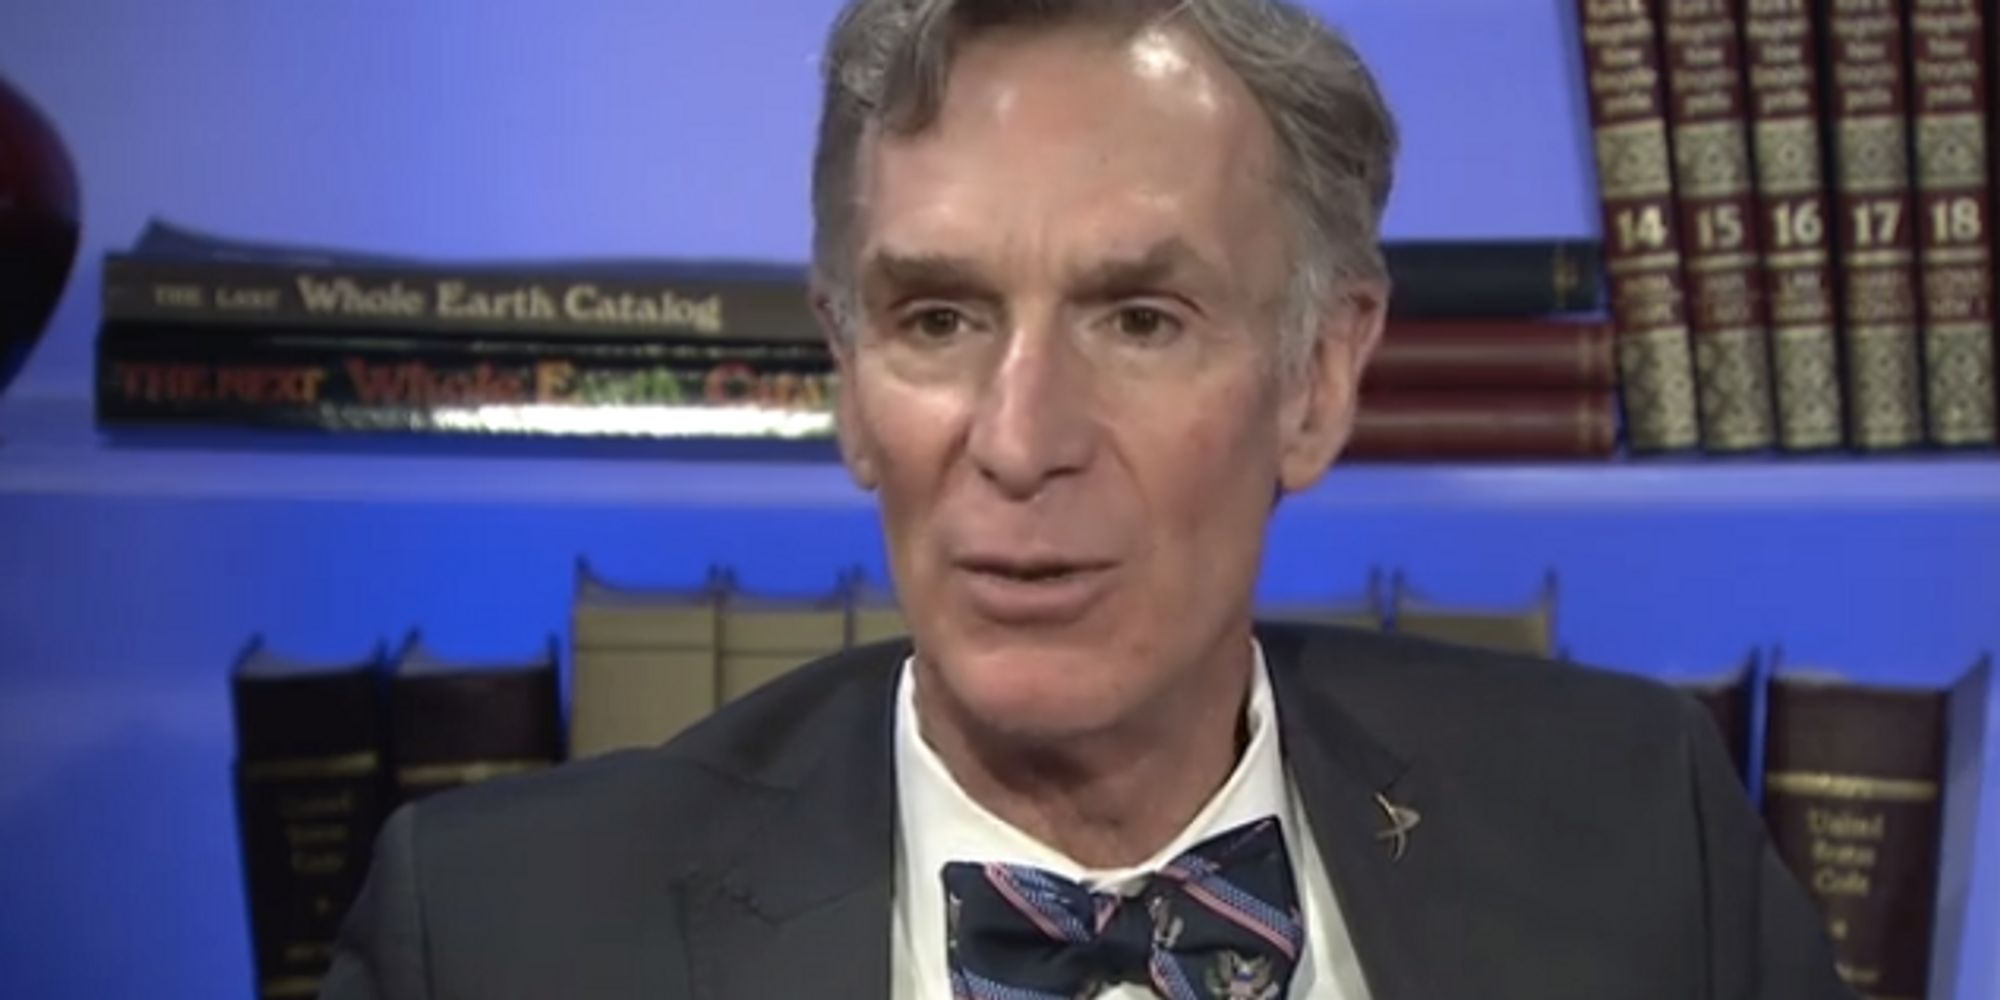 Bill Nye Warns Trump Administration Could Have 'Catastrophic' Effect On The Planet